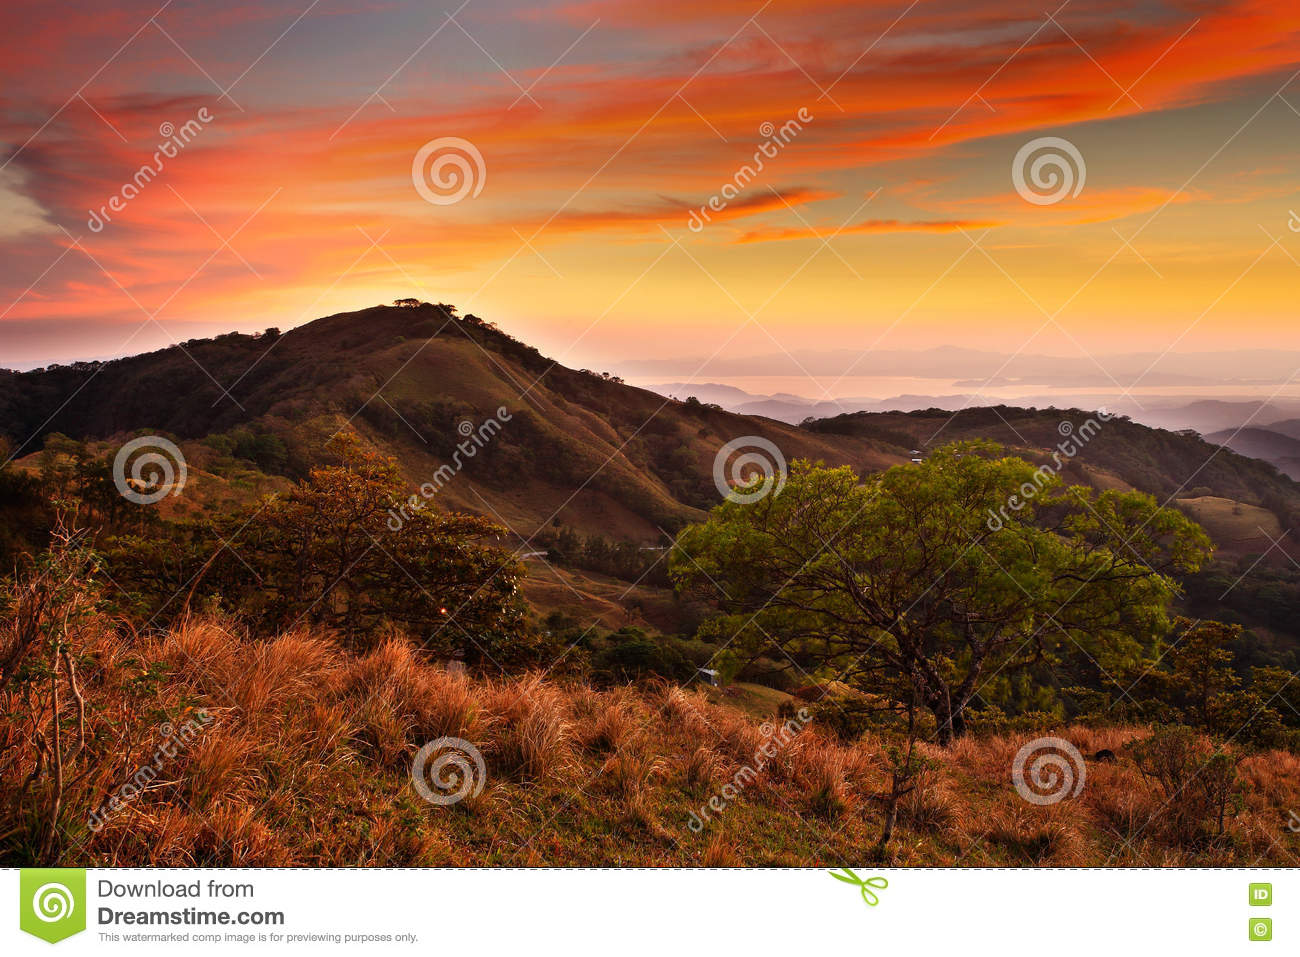 Foothills of Monteverde Cloud Forest Reserve, Costa Rica. Tropic mountains after sunset. Hills with beautiful orange sky with